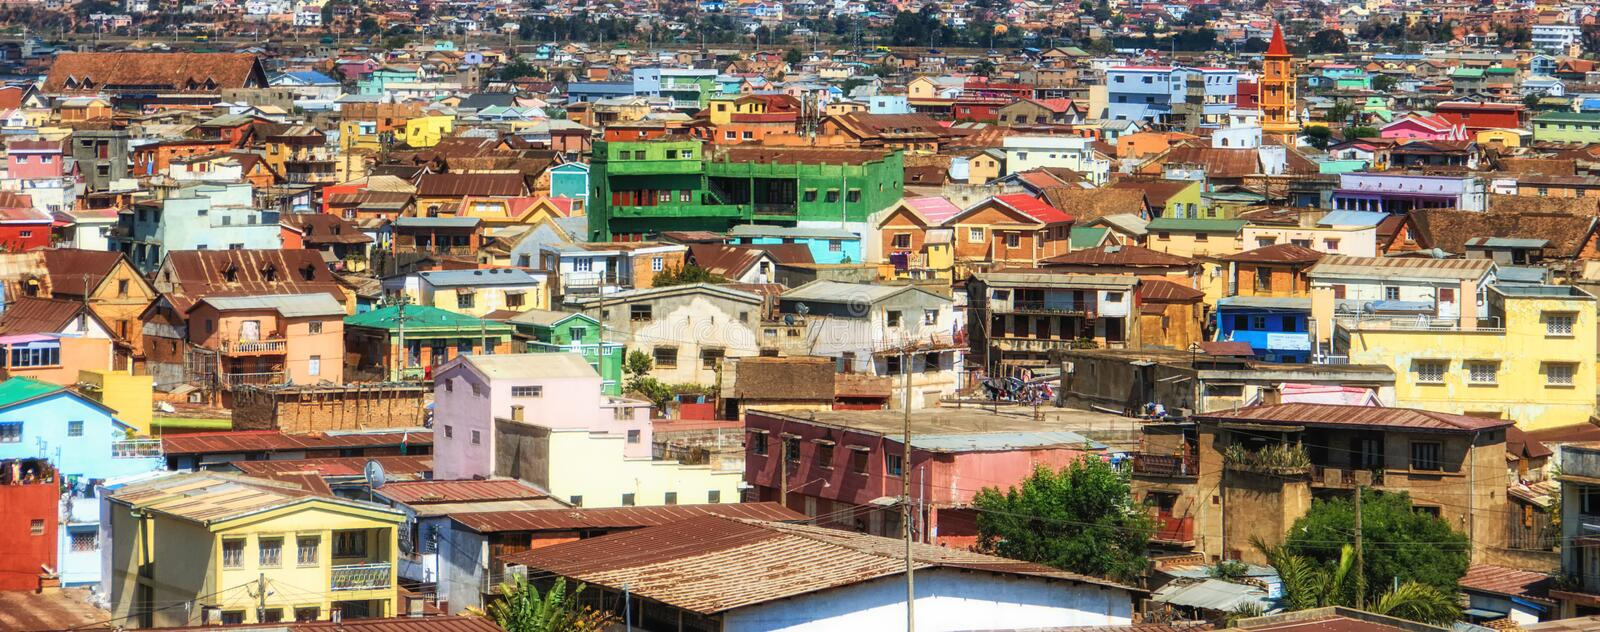 South Africa: Soweto Neighbourhood. Overview of Soweto South Western Townships, Johannesburg, South Africa stock photo